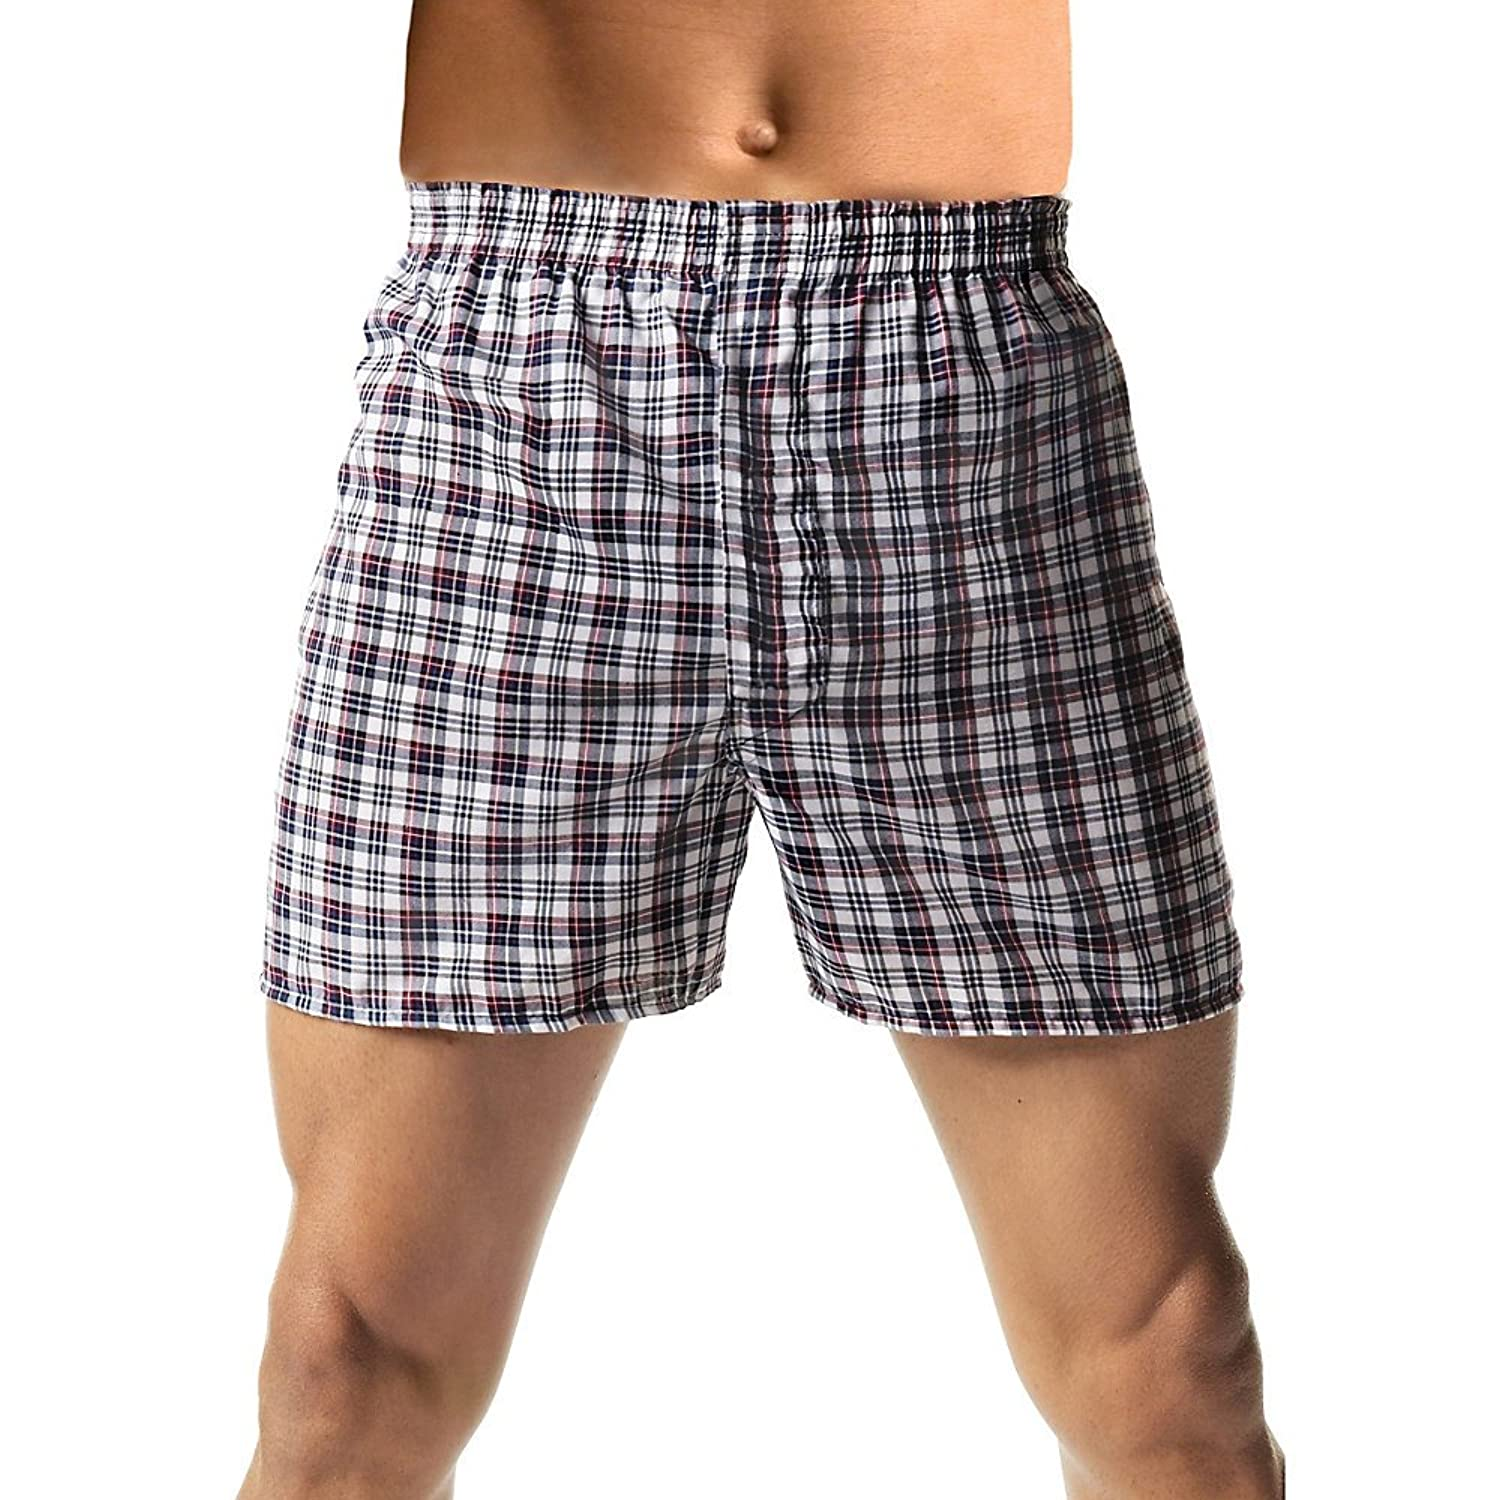 Hanes Men's 5-Pack FreshIQ Tagless Tartan Boxers with Exposed Waistband (Fashion Waistband)